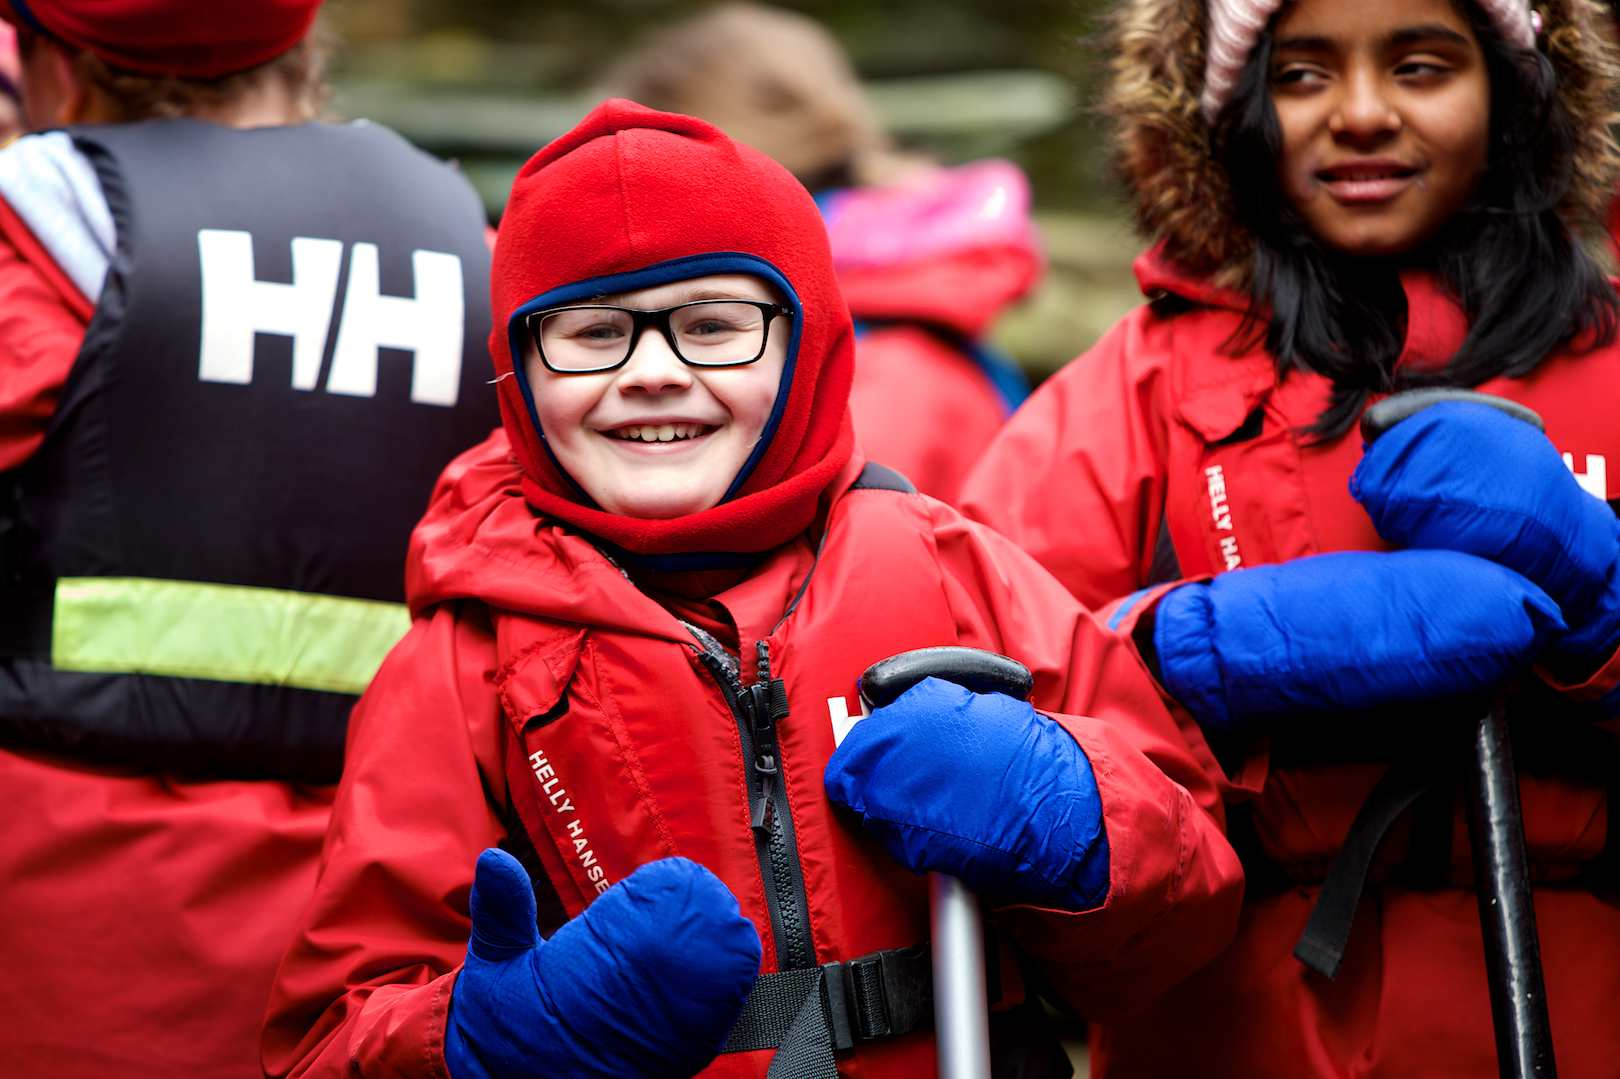 Happy pupils ready for canoeing on a cold day wearing balaclavas